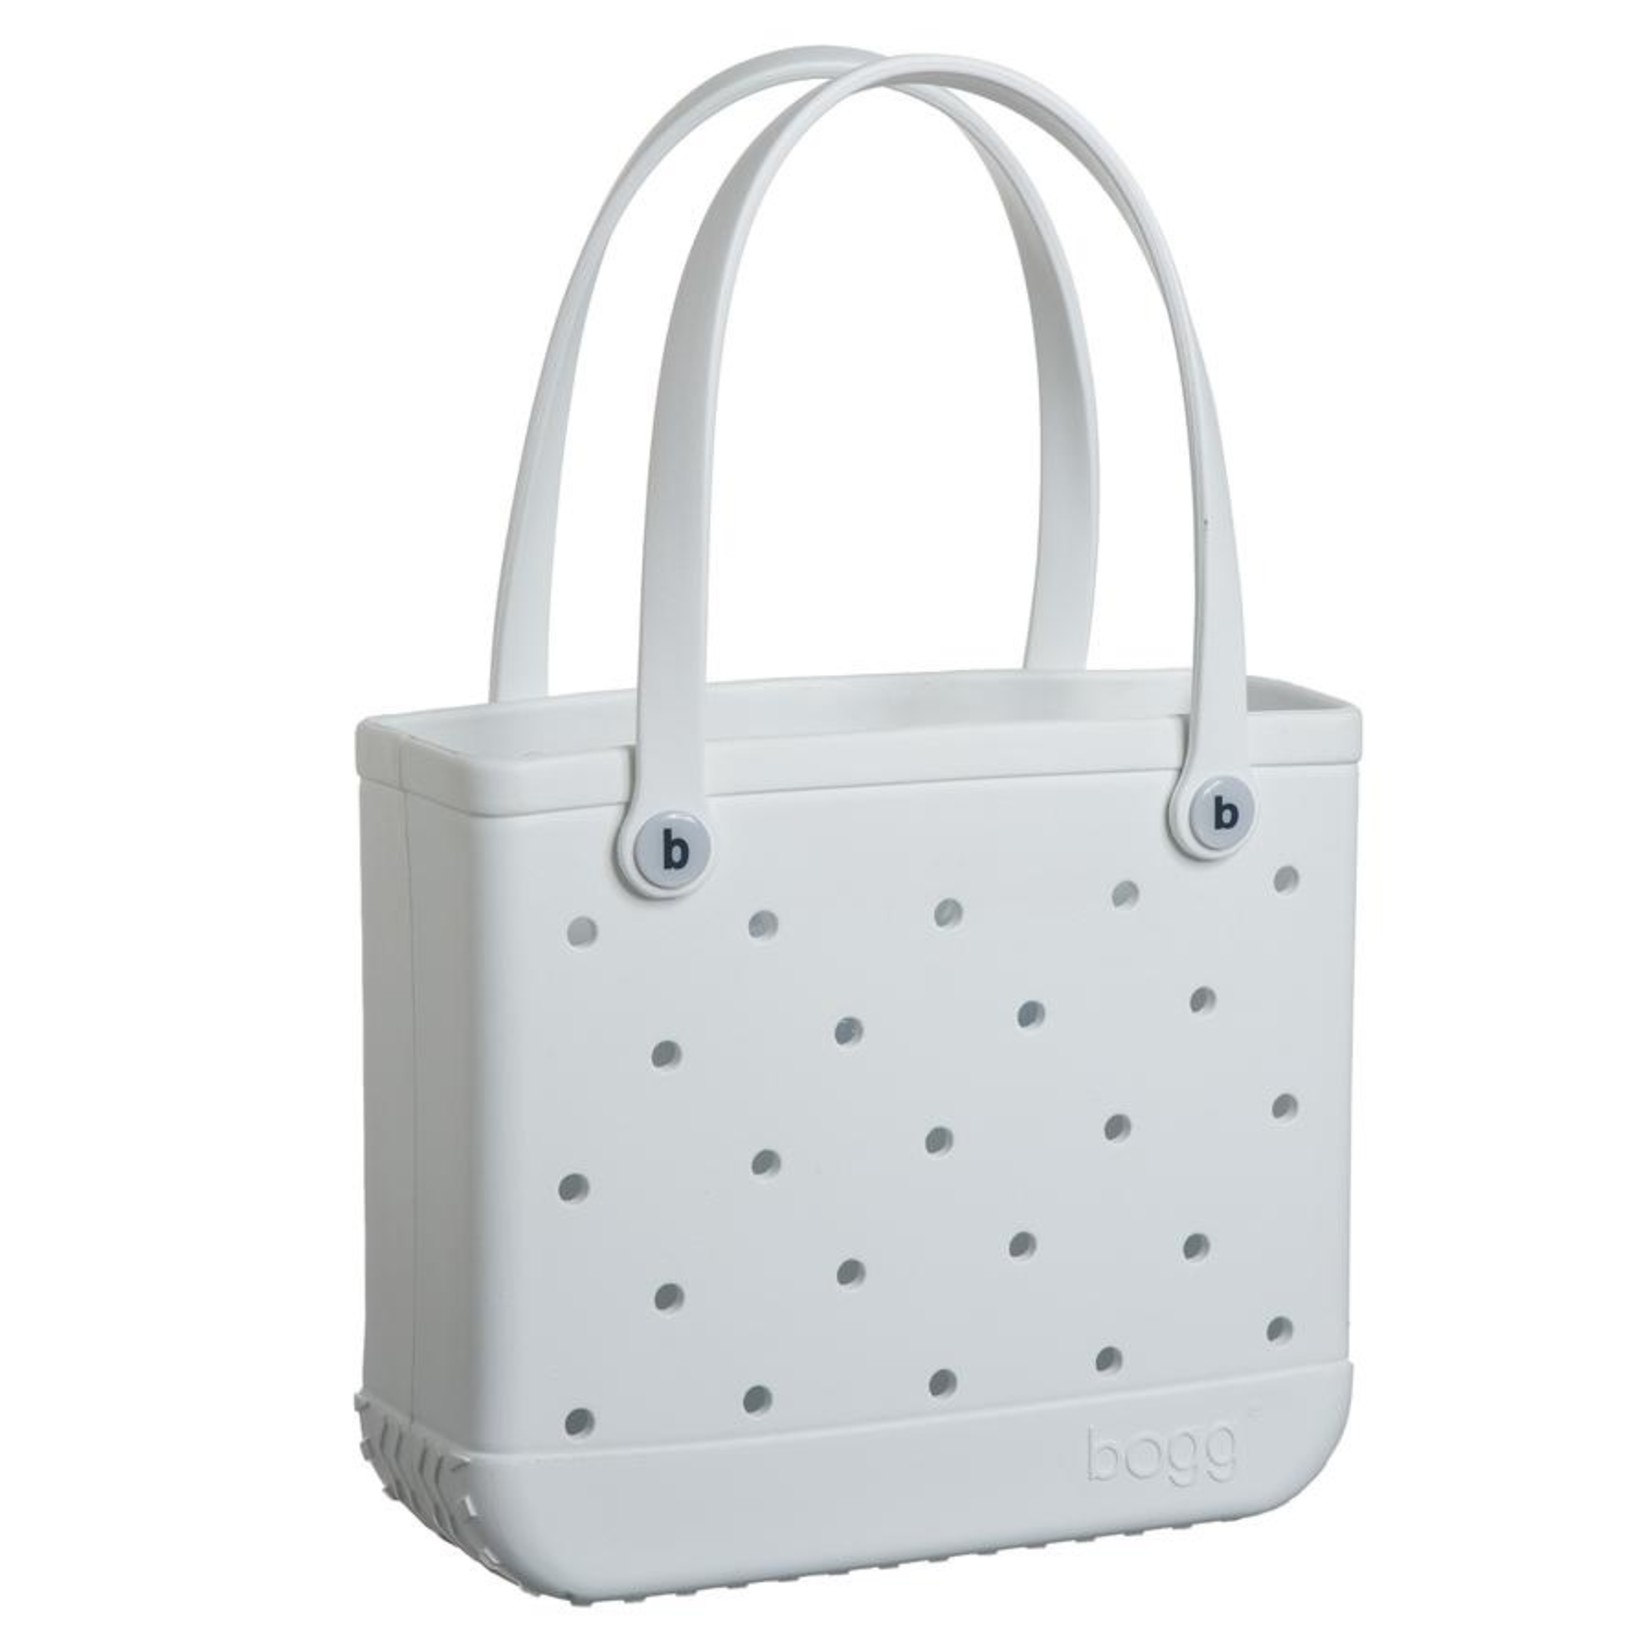 Bogg Bags FOR SHORE WHITE BOGG BABY TOTE